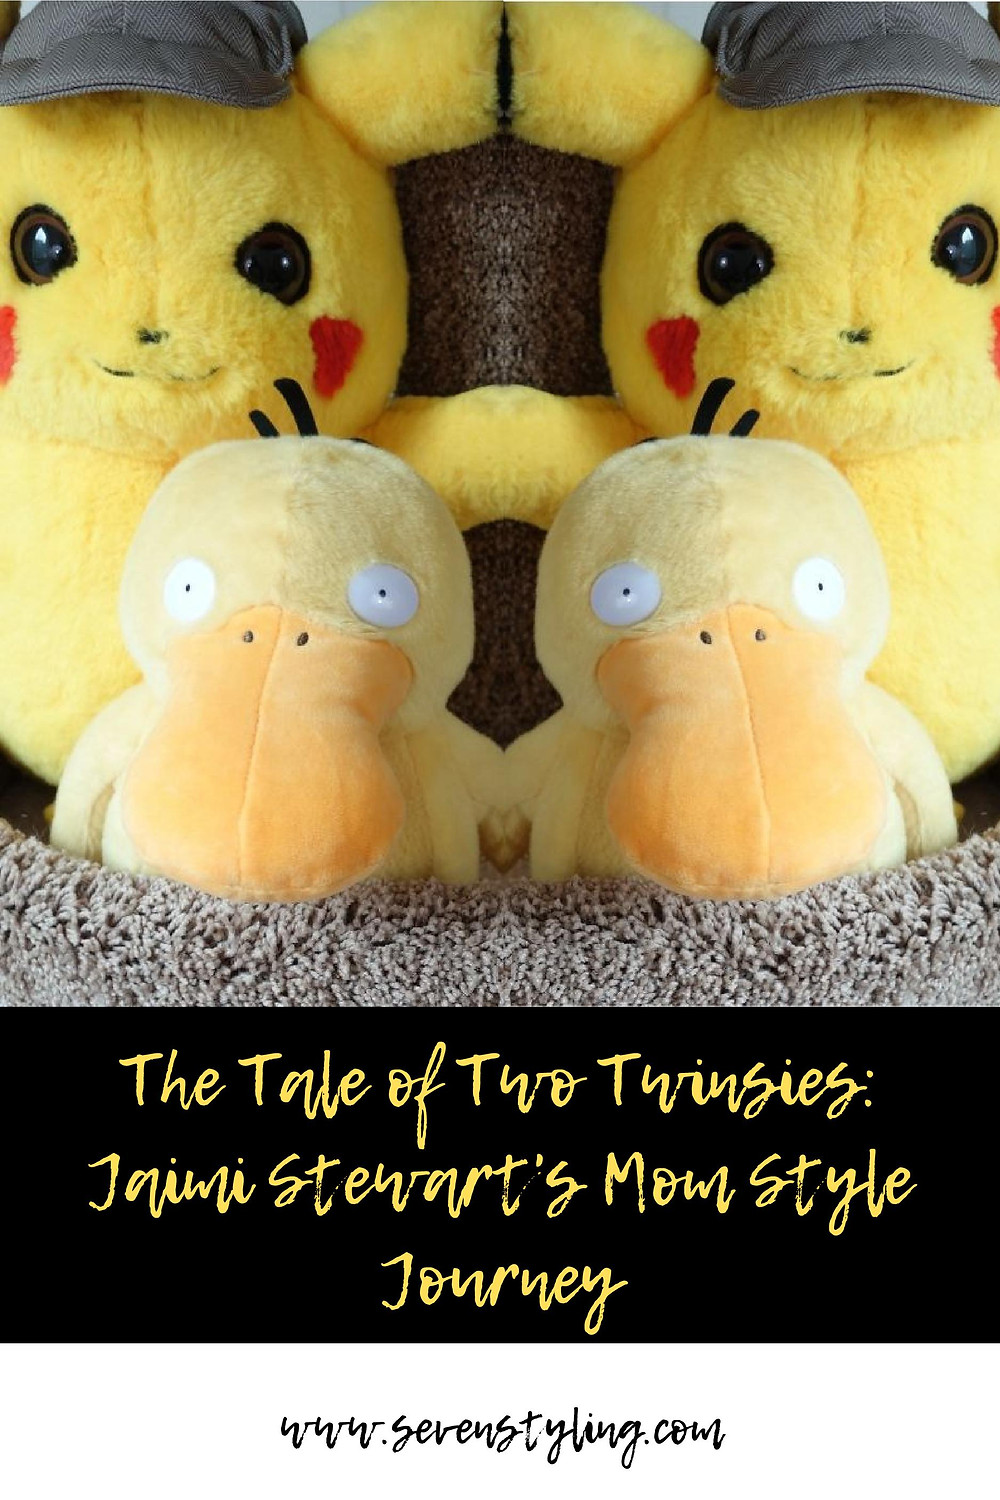 The Tale of Two Twinsies: Jaimi Stewart's Mom Style Journey